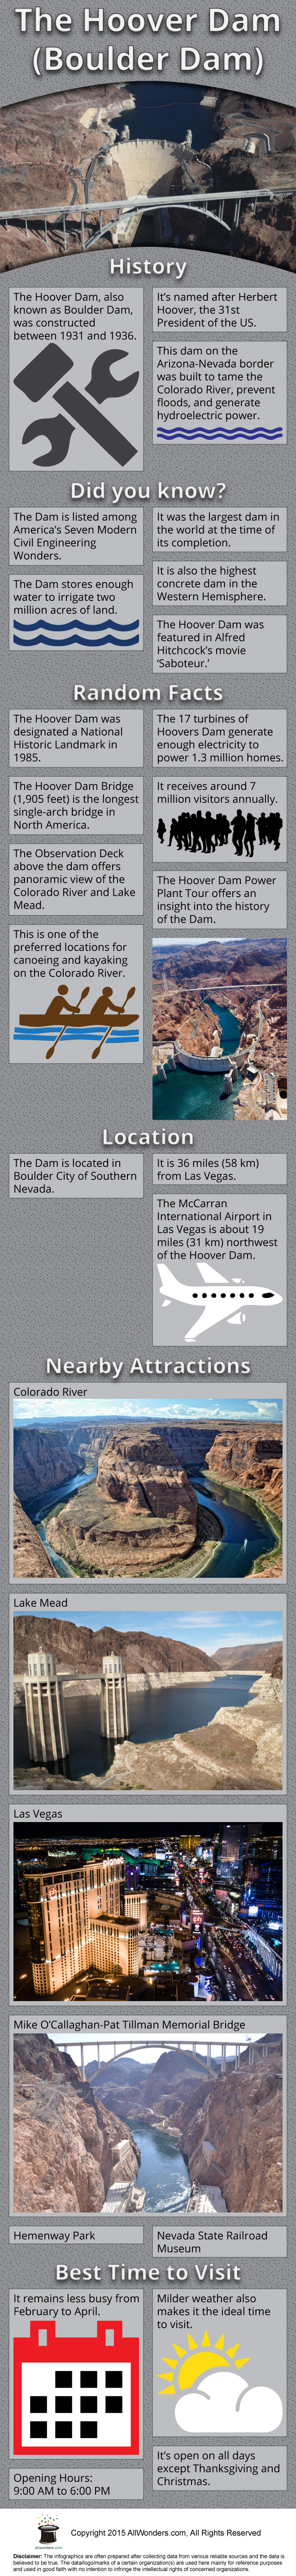 Hoover Dam Infographic